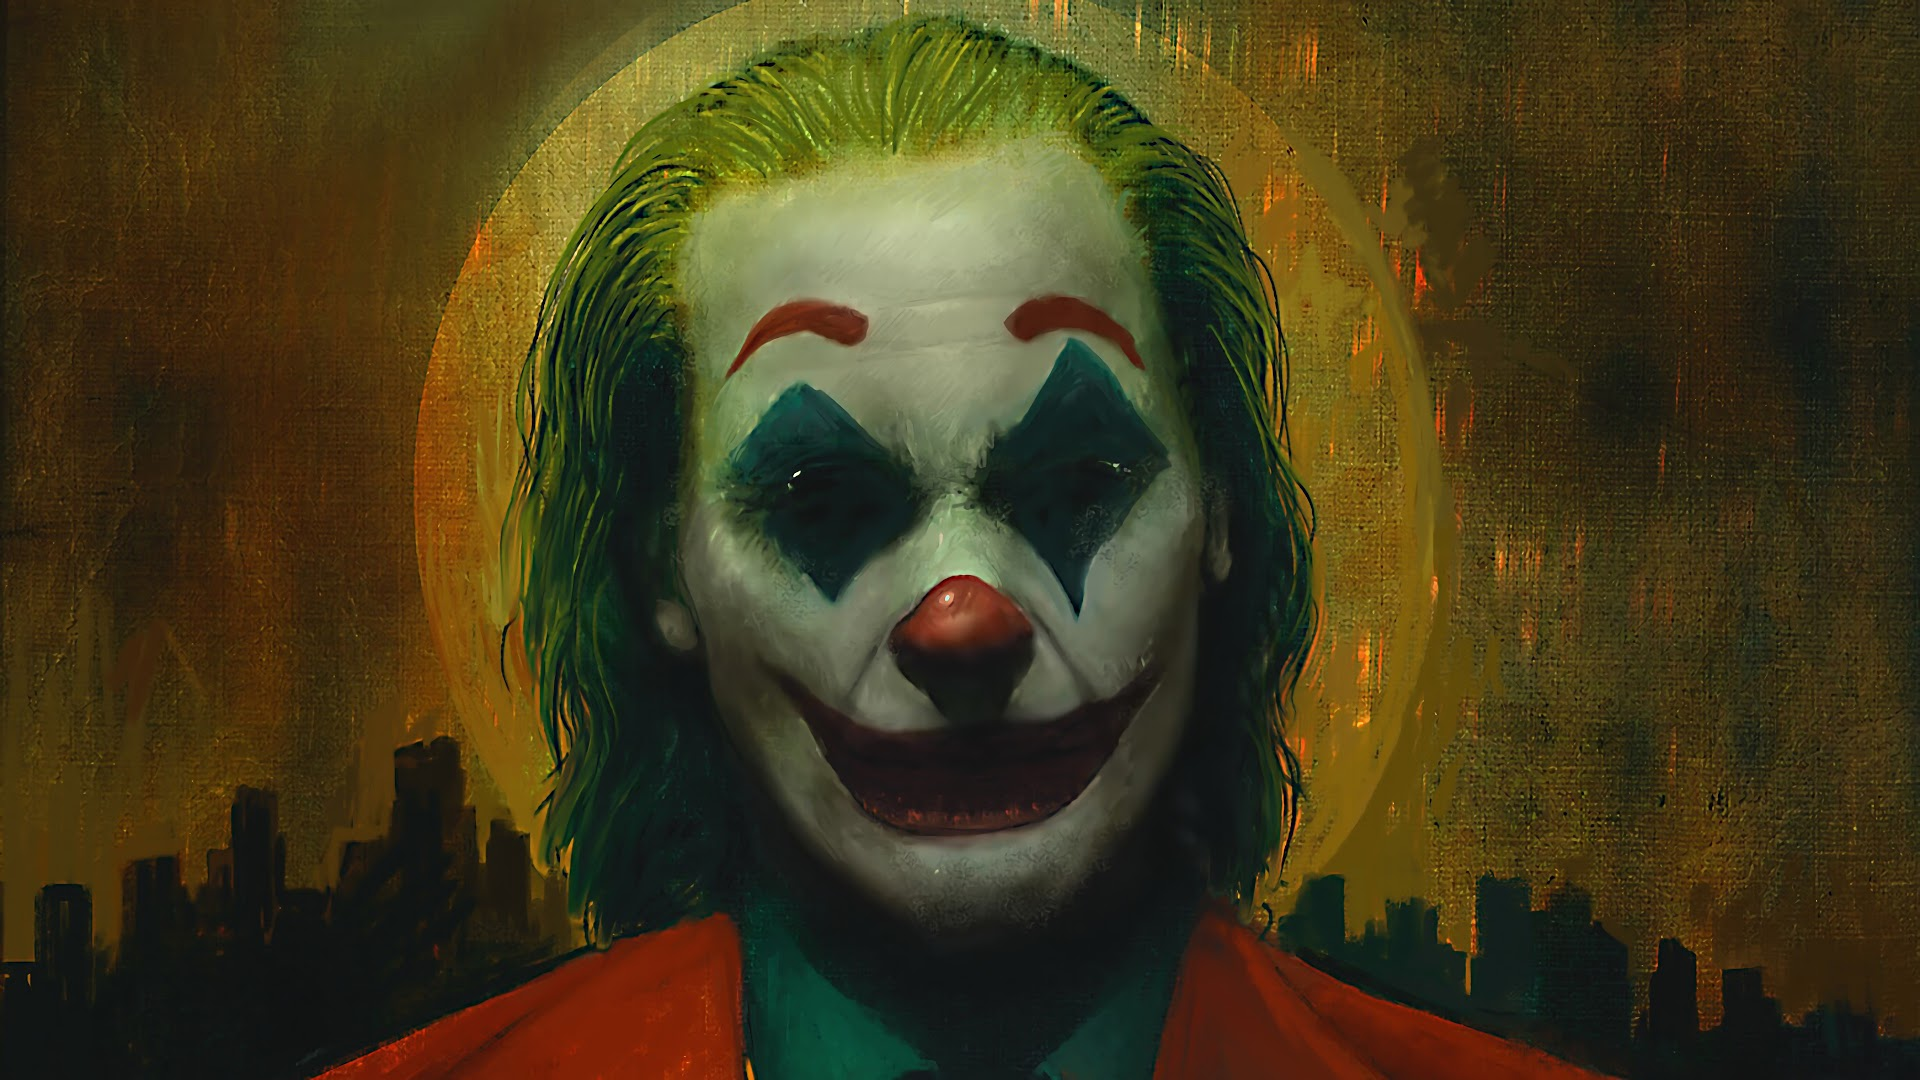 Joker 2019 4k Joker Joaquin Phoenix 1920x1080 Download Hd Wallpaper Wallpapertip